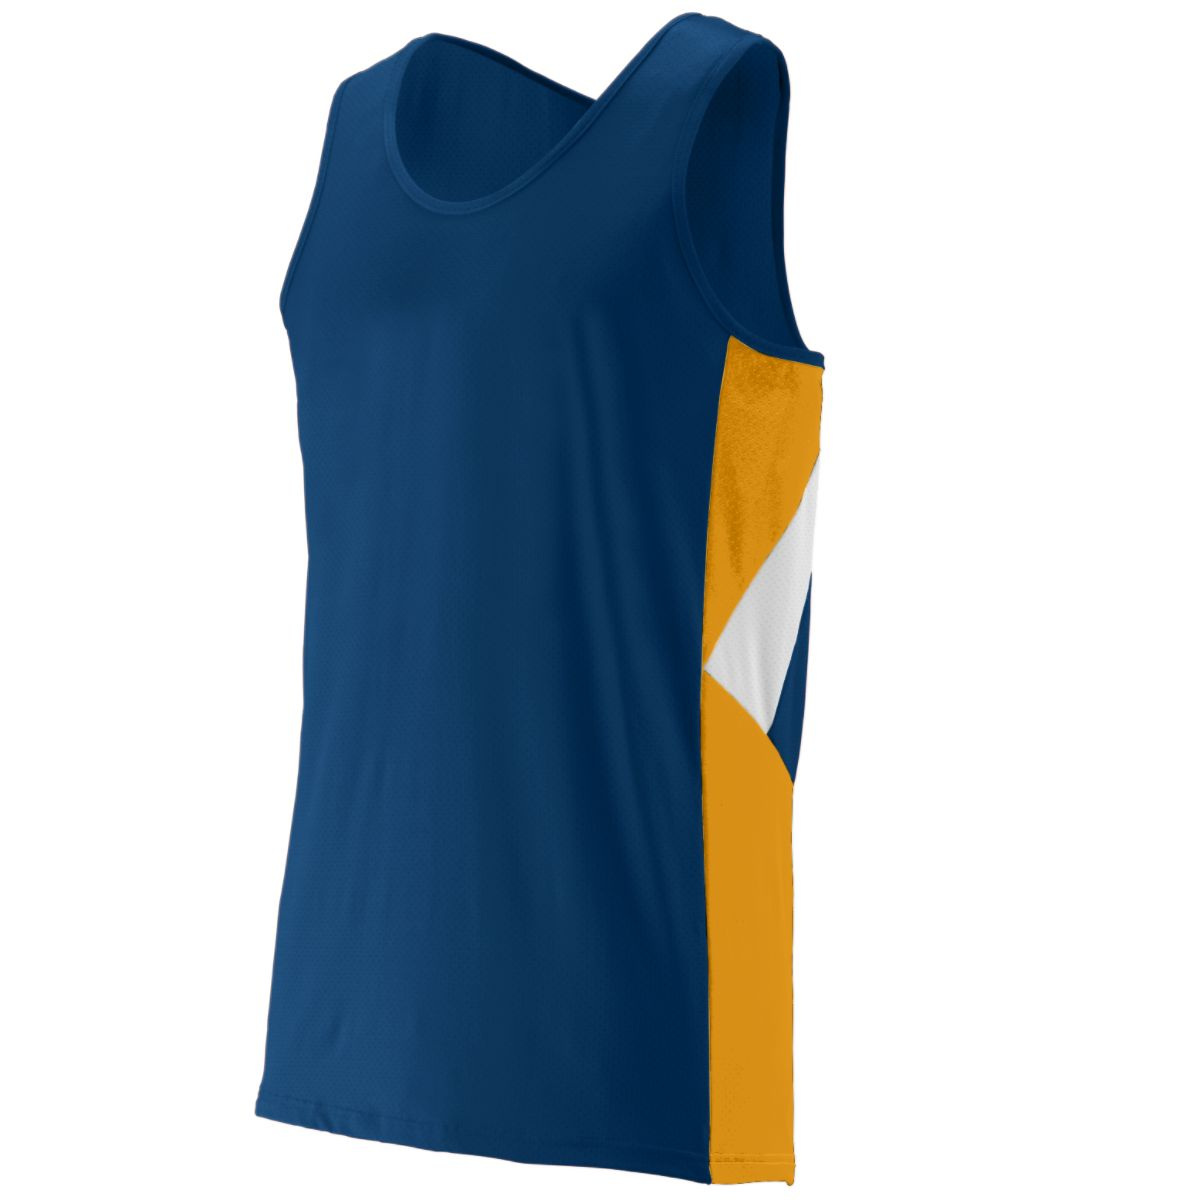 Augusta Youth Sprint Jersey Nv/Gd/Wh L - image 1 de 1